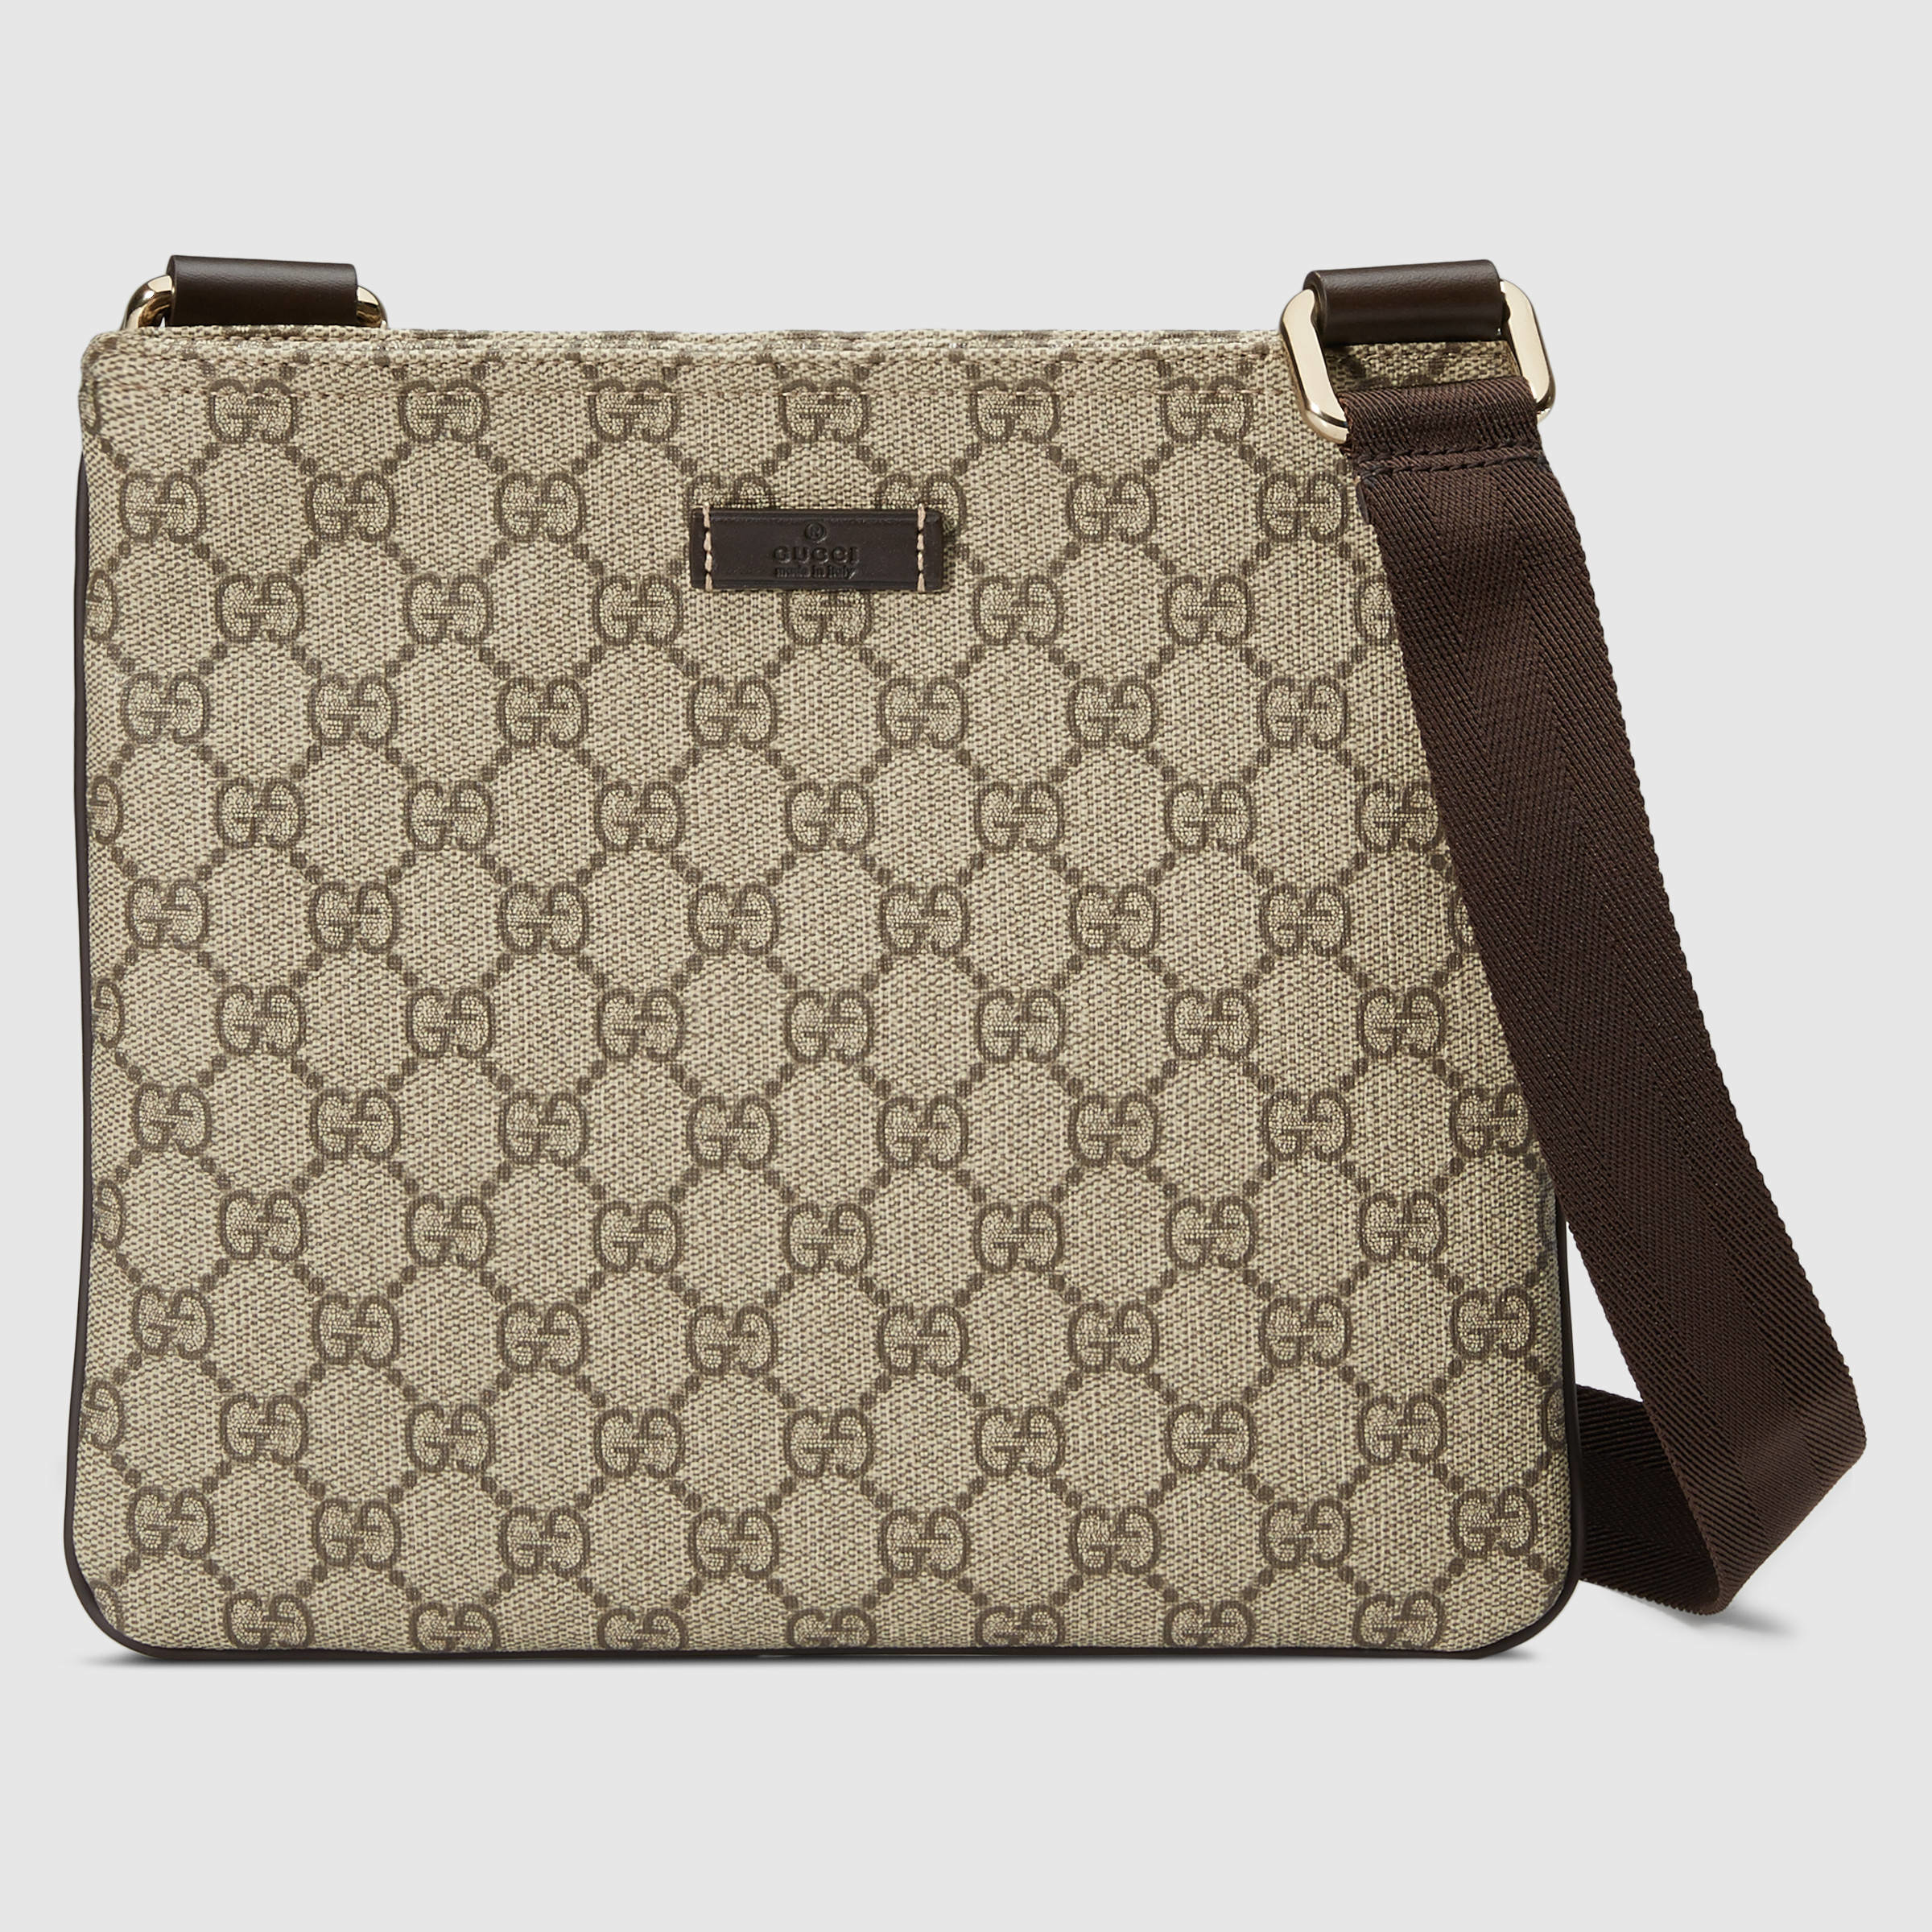 73eb869945e8 Gucci Gg Supreme Cross Body Messenger Bag for Men - Lyst